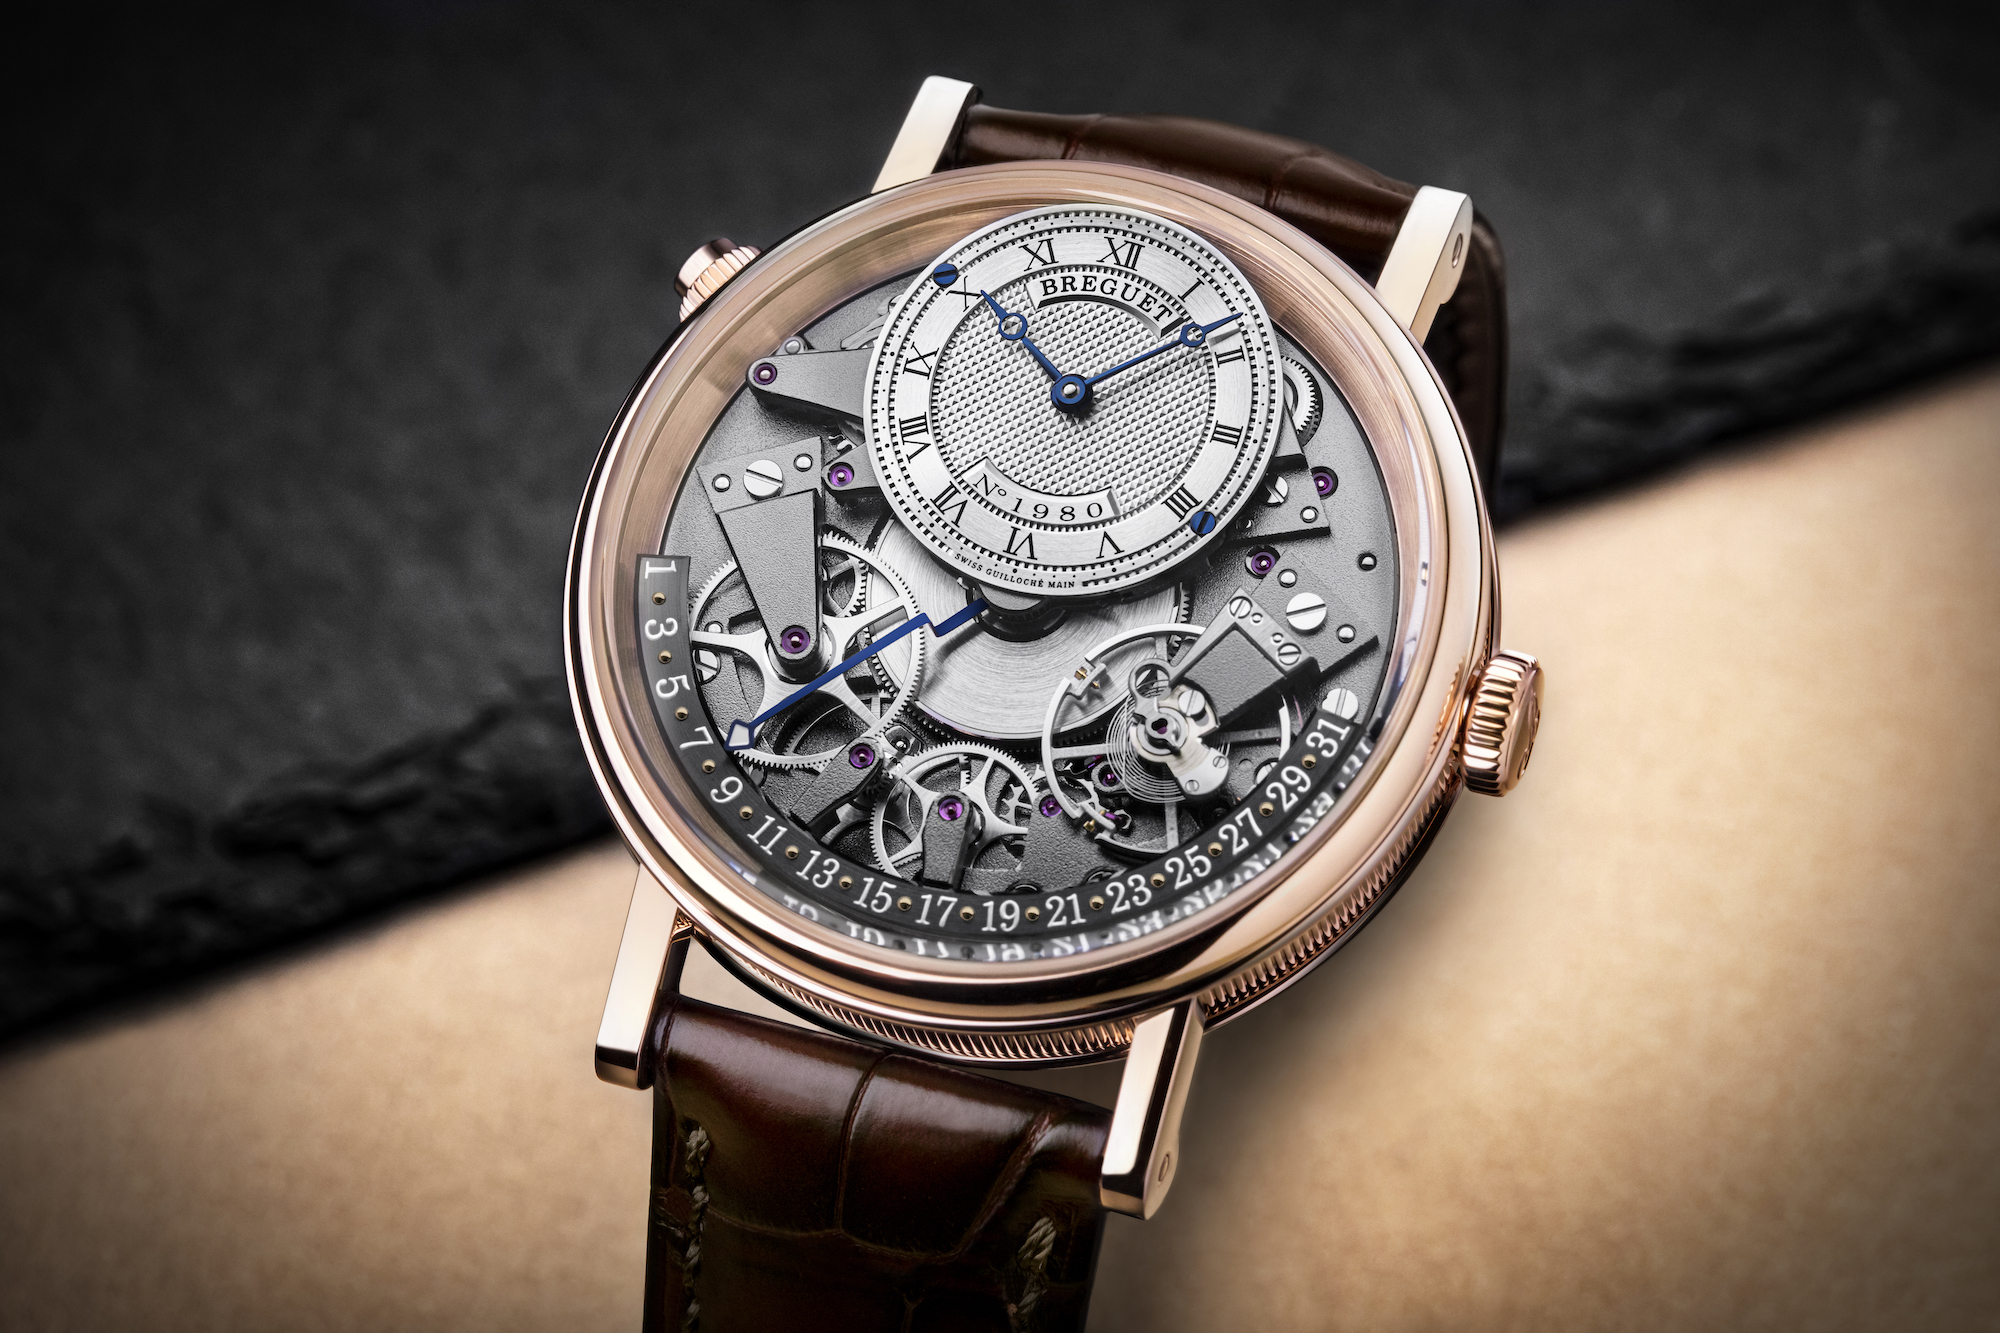 Breguet Tradition Quantieme Retrograde 7597BR_G1_9WU lifestyle 2